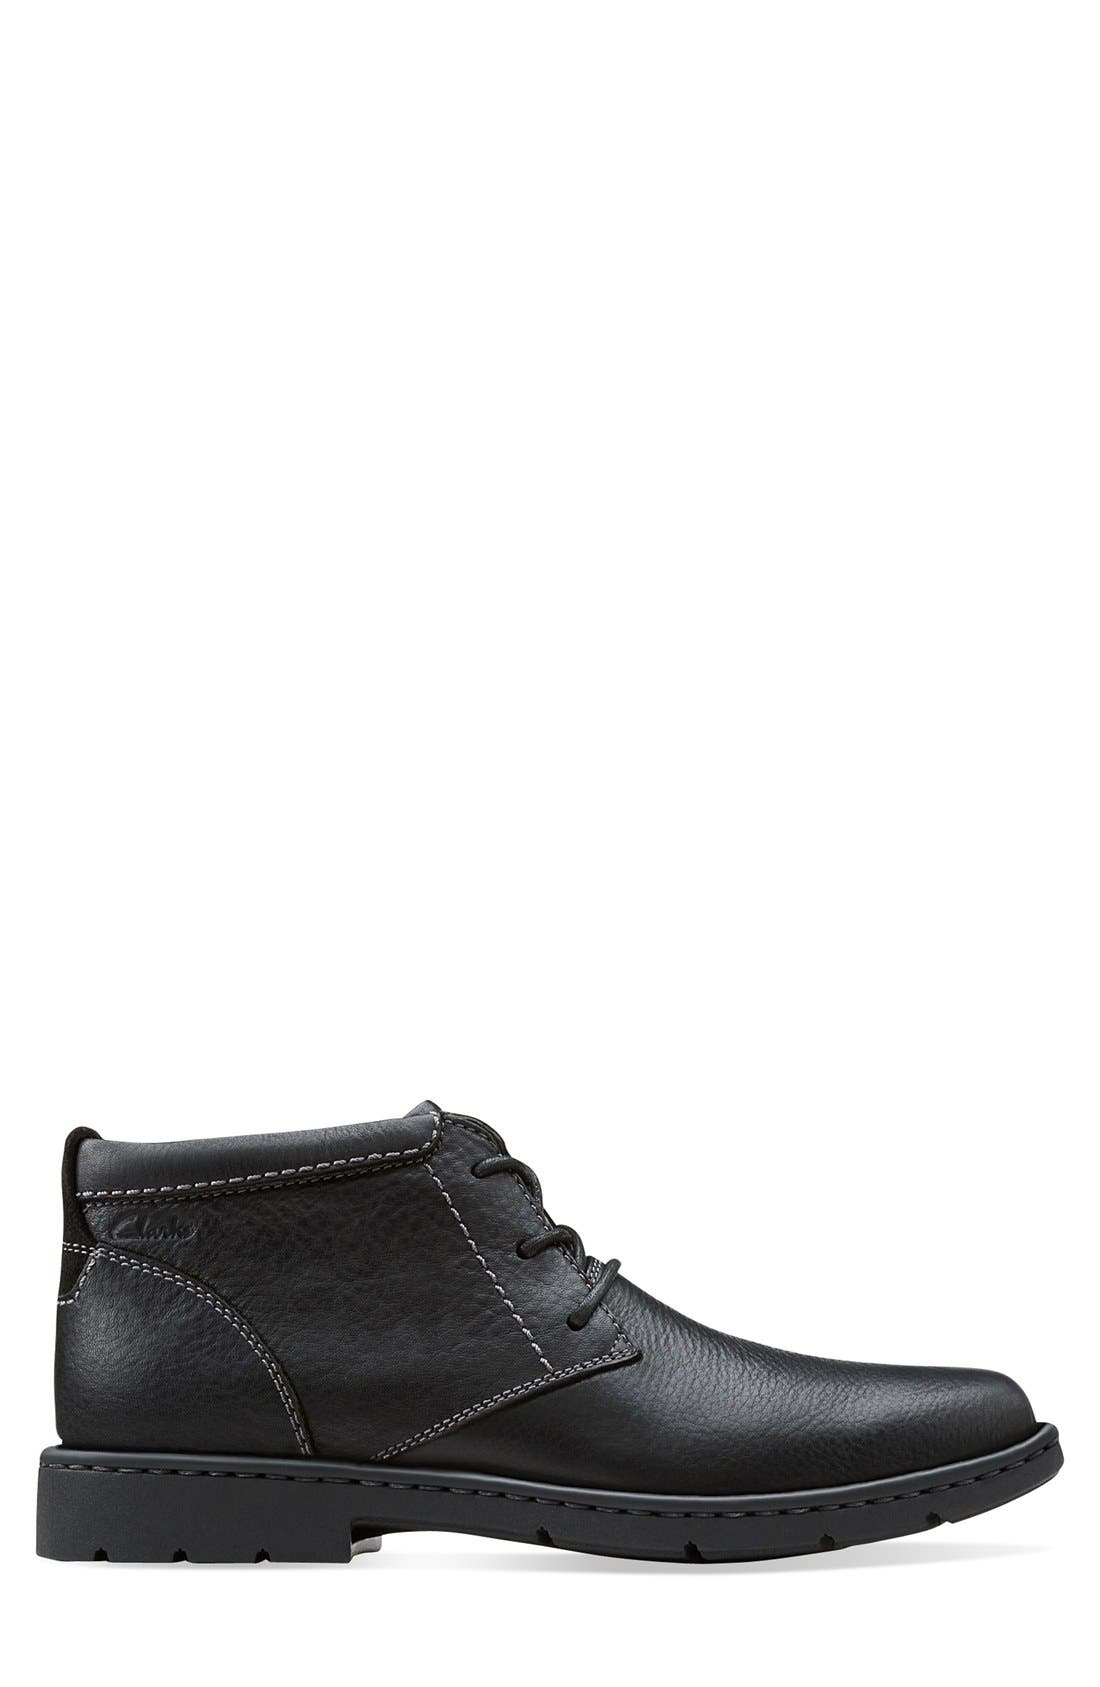 'Stratton - Limit' Plain Toe Boot,                             Alternate thumbnail 2, color,                             001